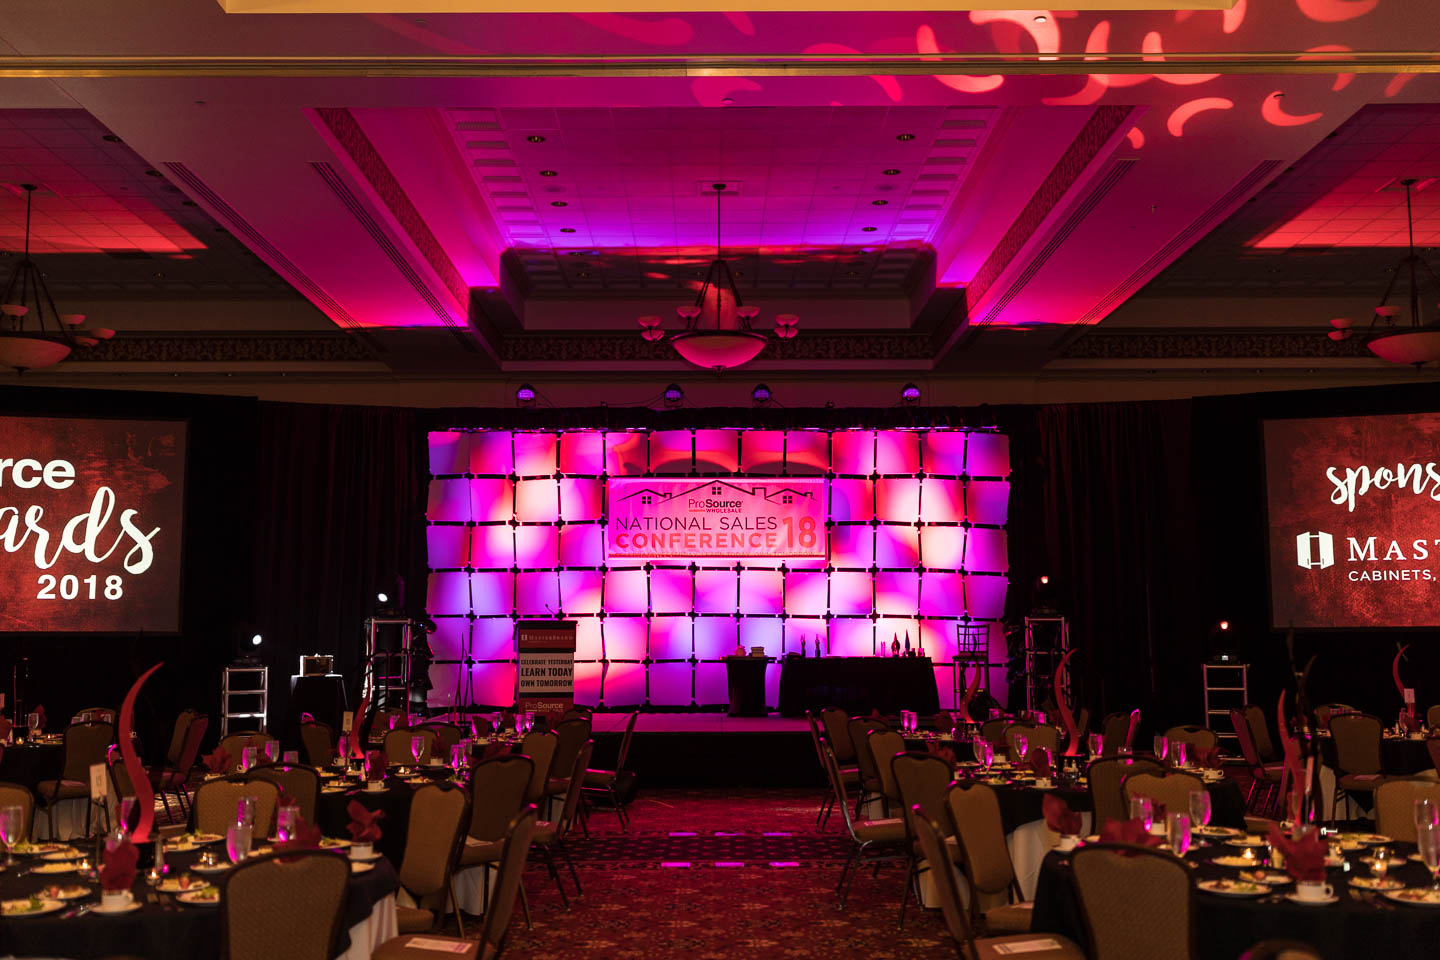 ProSource National Sales Conference staging and rounds at the St. Charles Convention Center